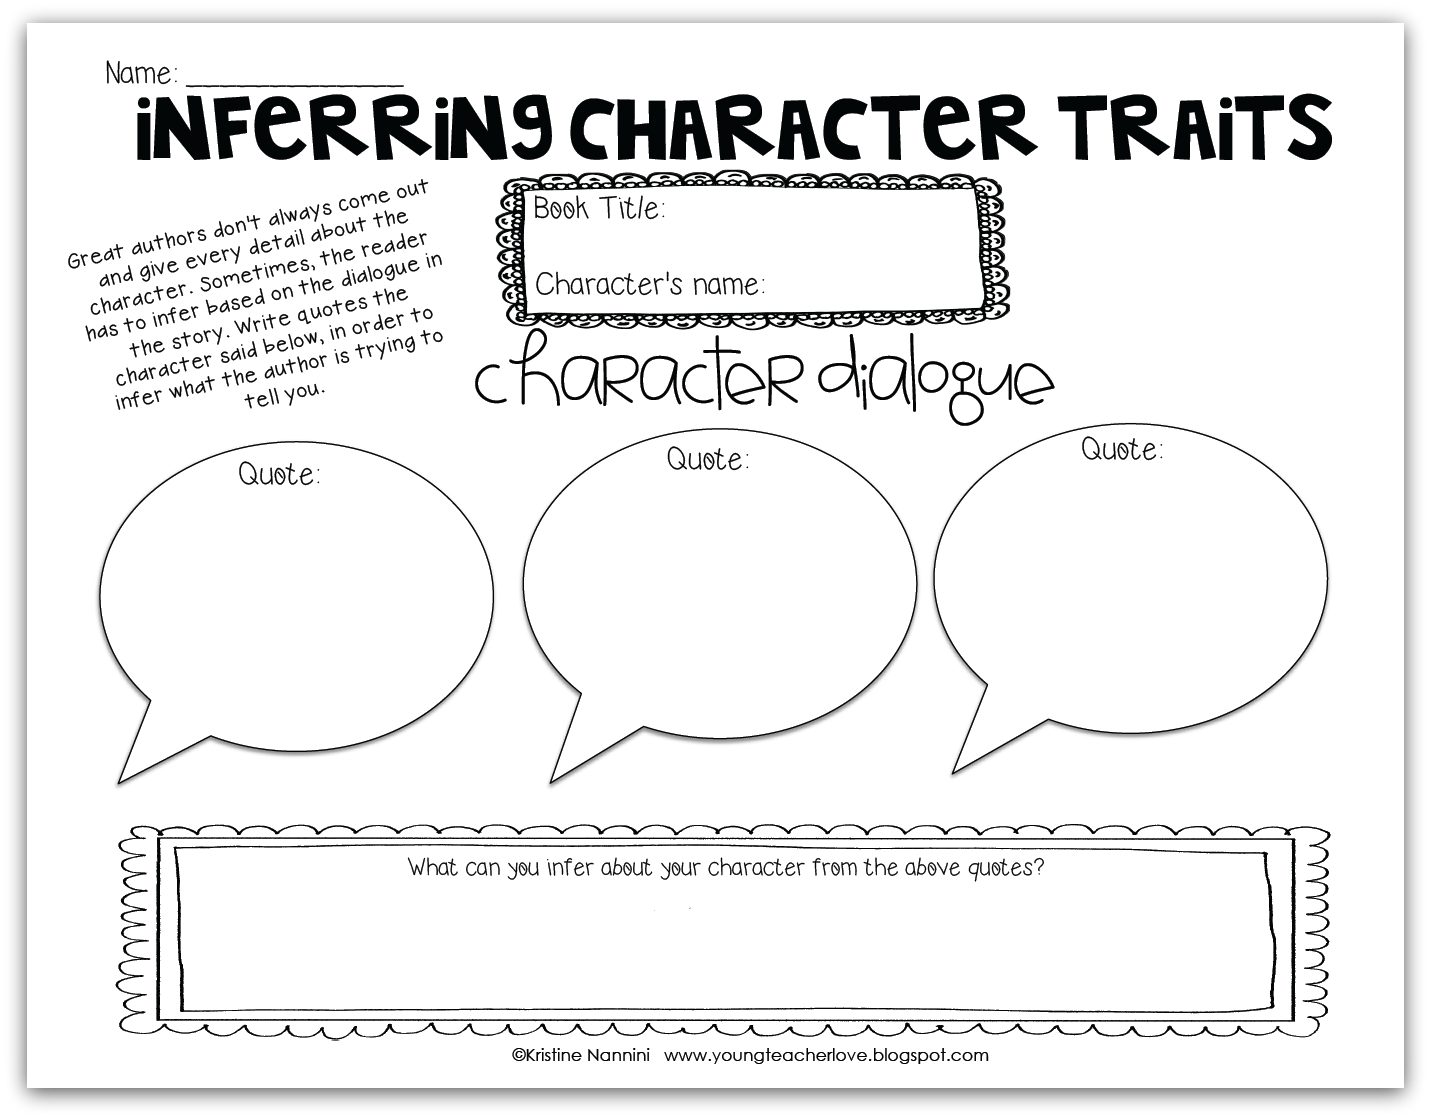 small resolution of Inferring Character Traits Through Dialogue (Plus a Free Graphic Organizer)  - Young Teacher Love   Free graphic organizers